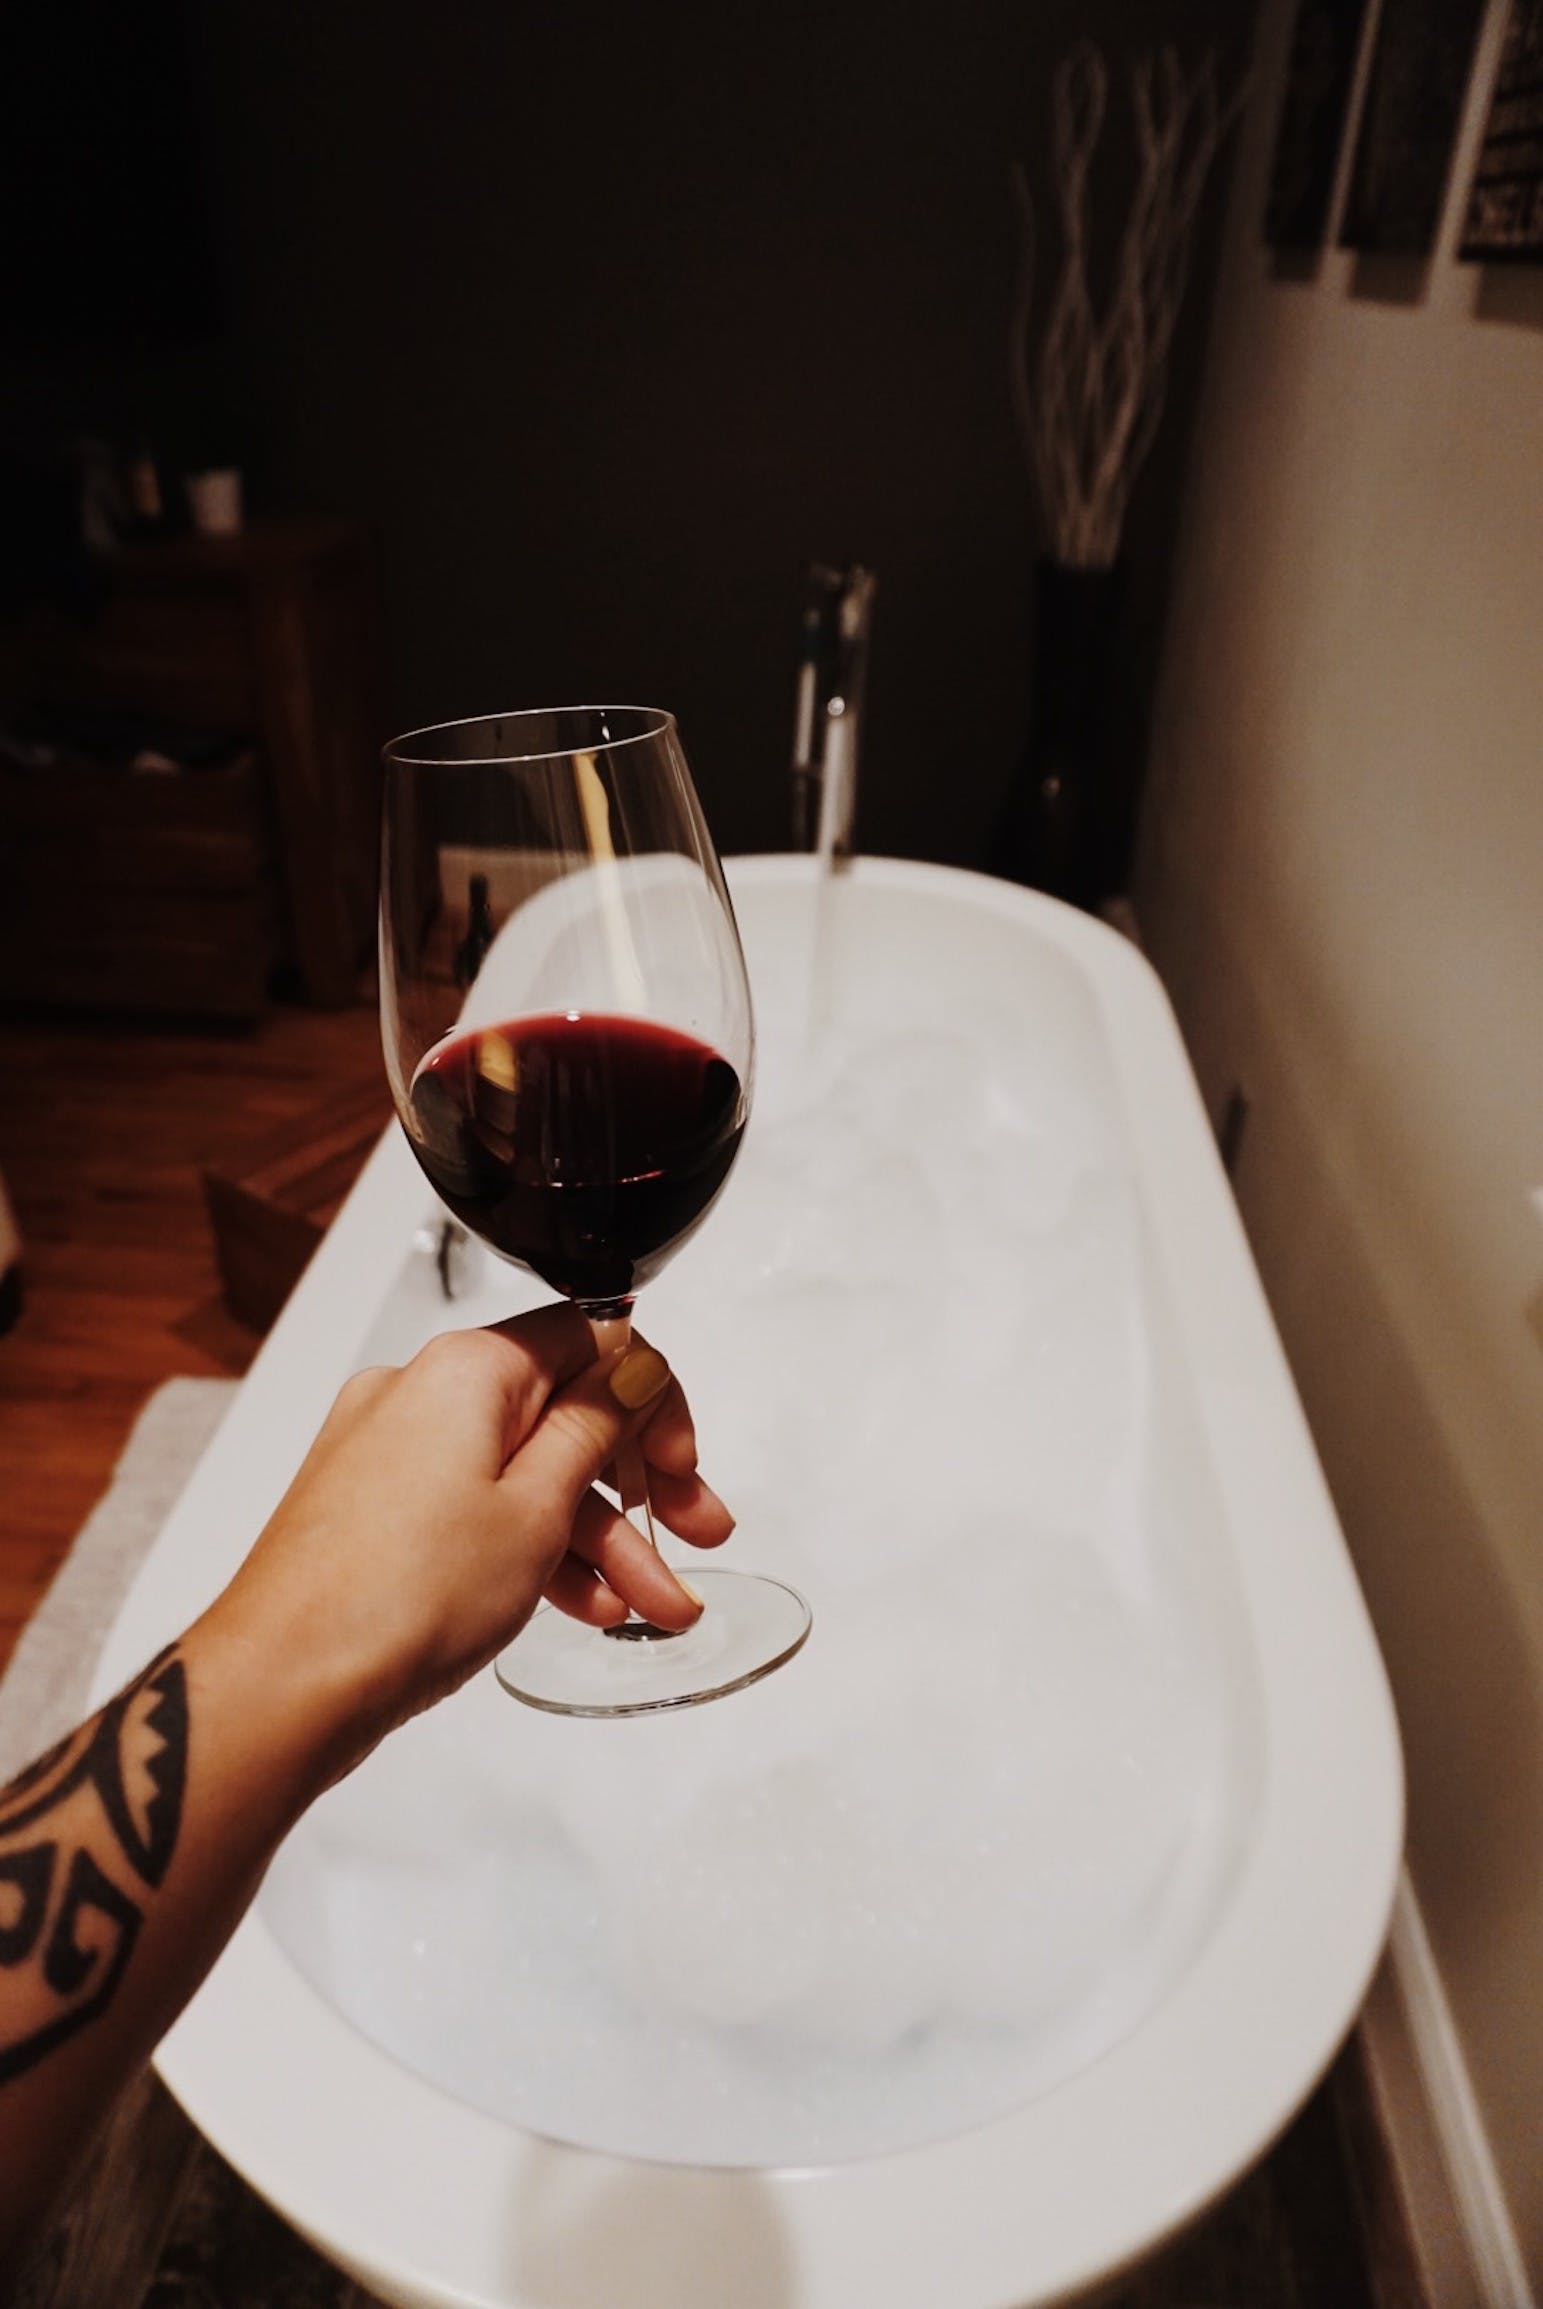 Person Holding Wine Glass Filled With Red Liquid Substance